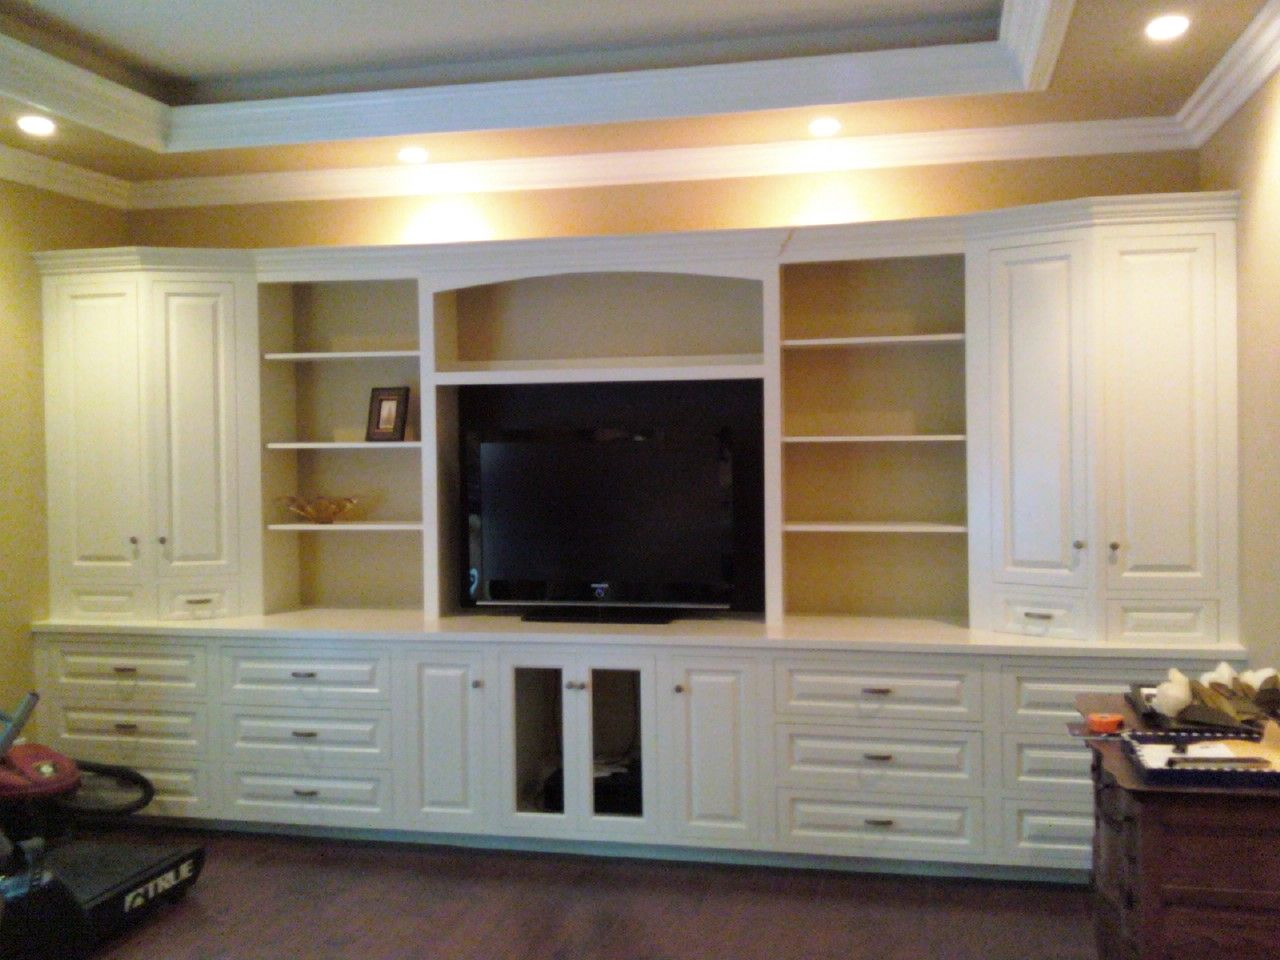 Living Room Wall Units With Storage Wall Units Design